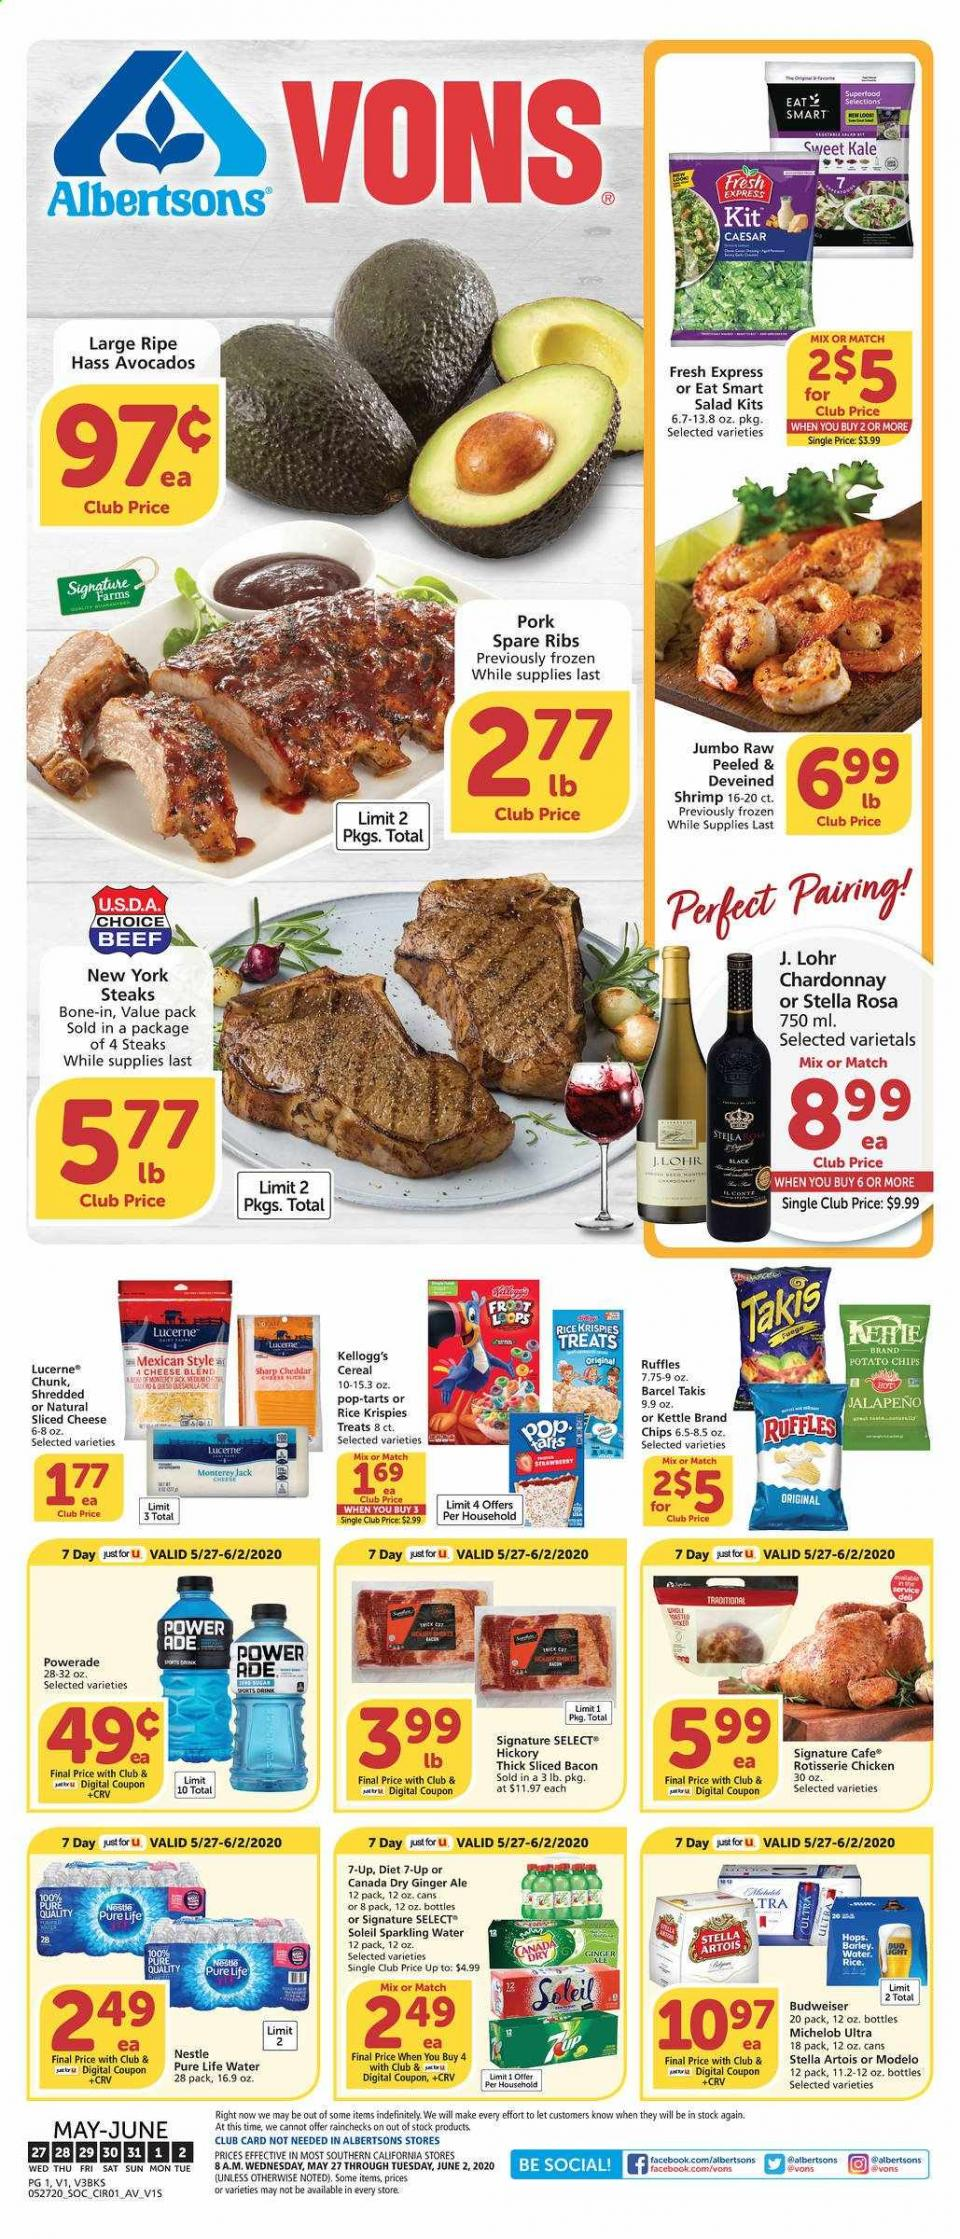 vons fresh produce final may weekly ad valid from may 27 jun 2 2020